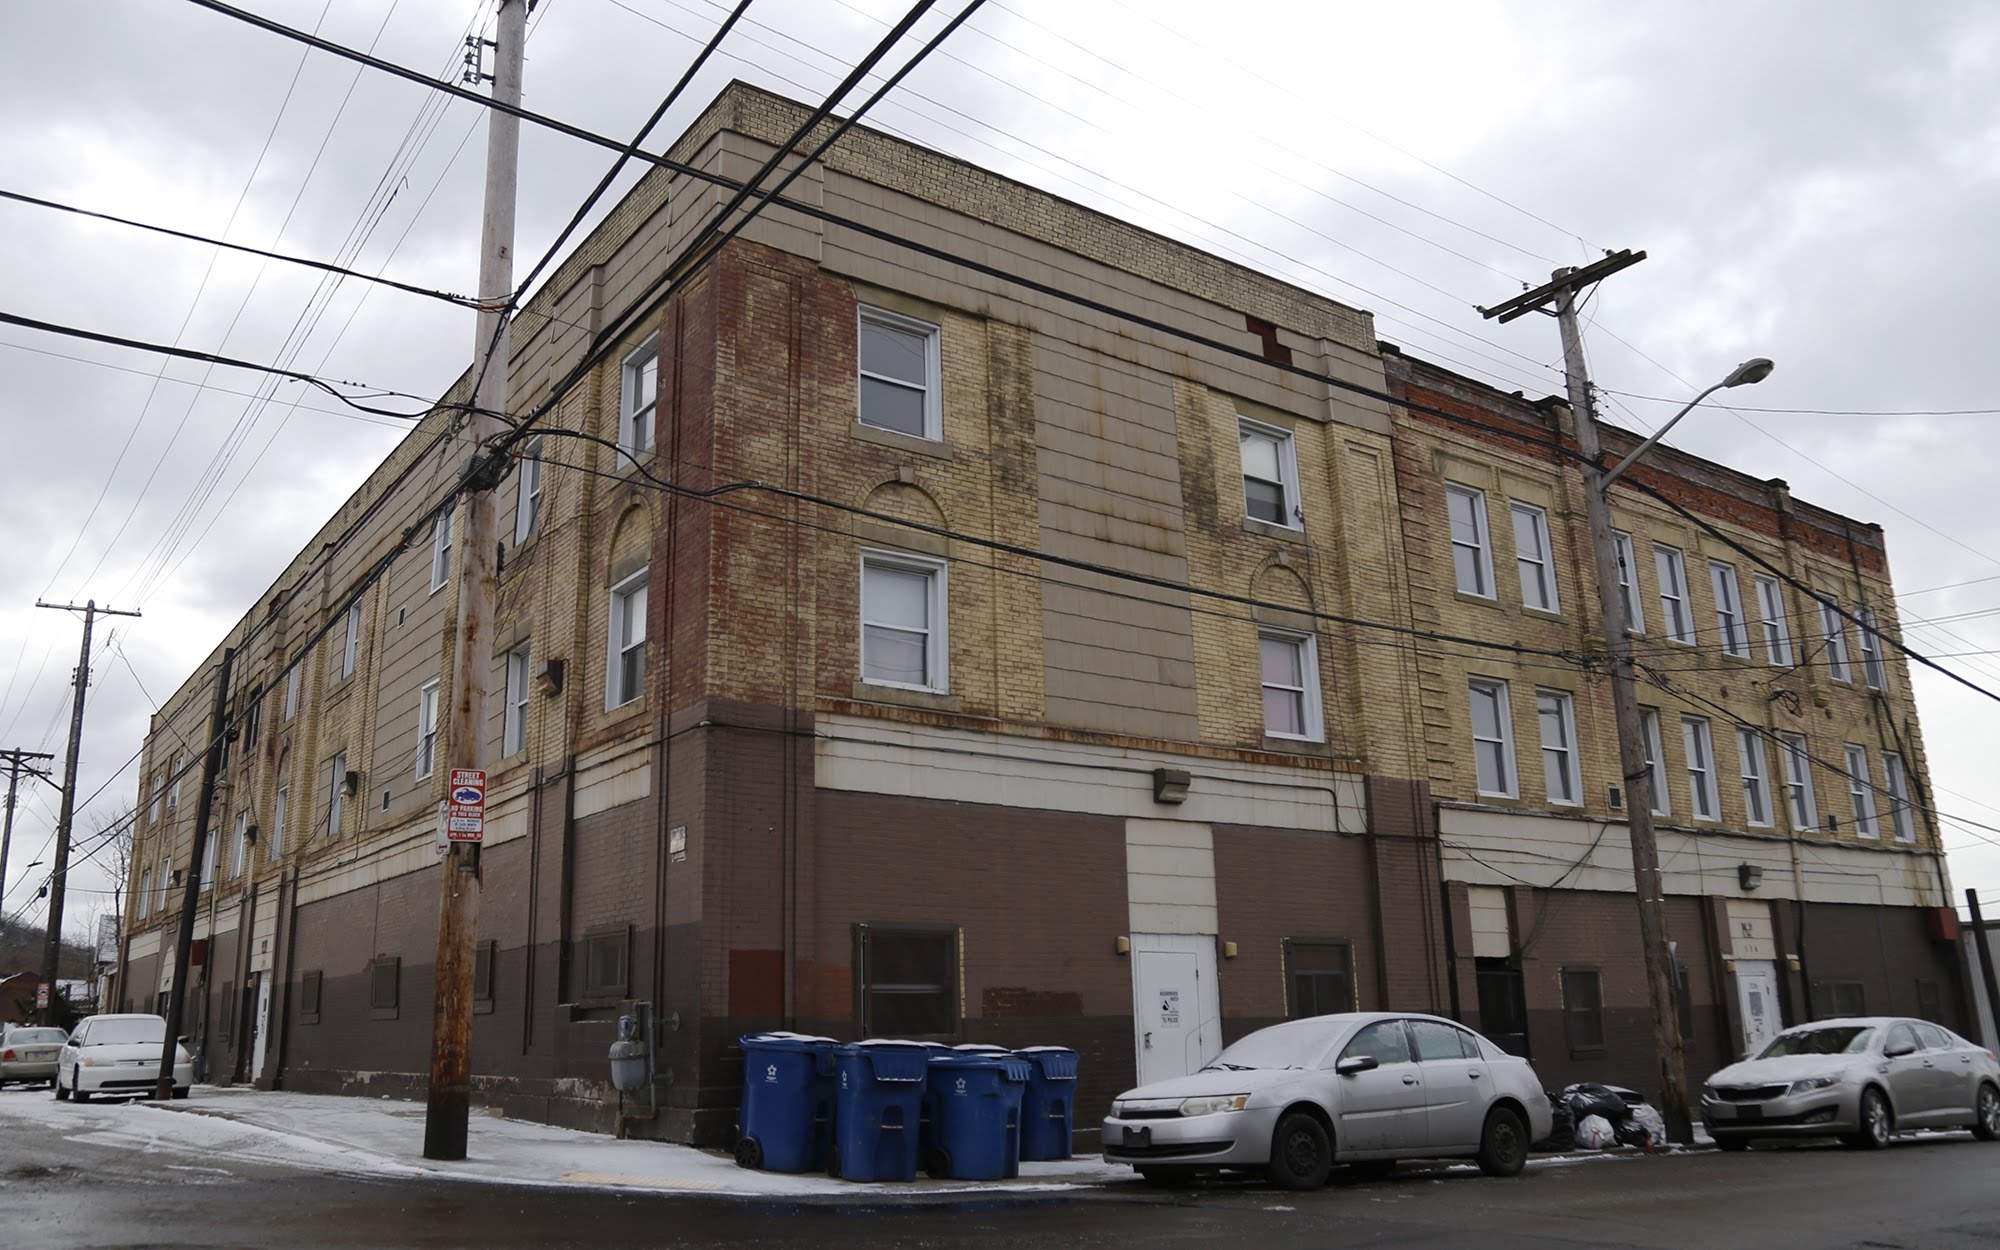 Tyrone Goodwin's apartment building, at the intersection of Tioga Street and Brushton Avenue, is one of the 32 Bethesda-Homewood properties. (Photo by Ryan Loew/PublicSource)